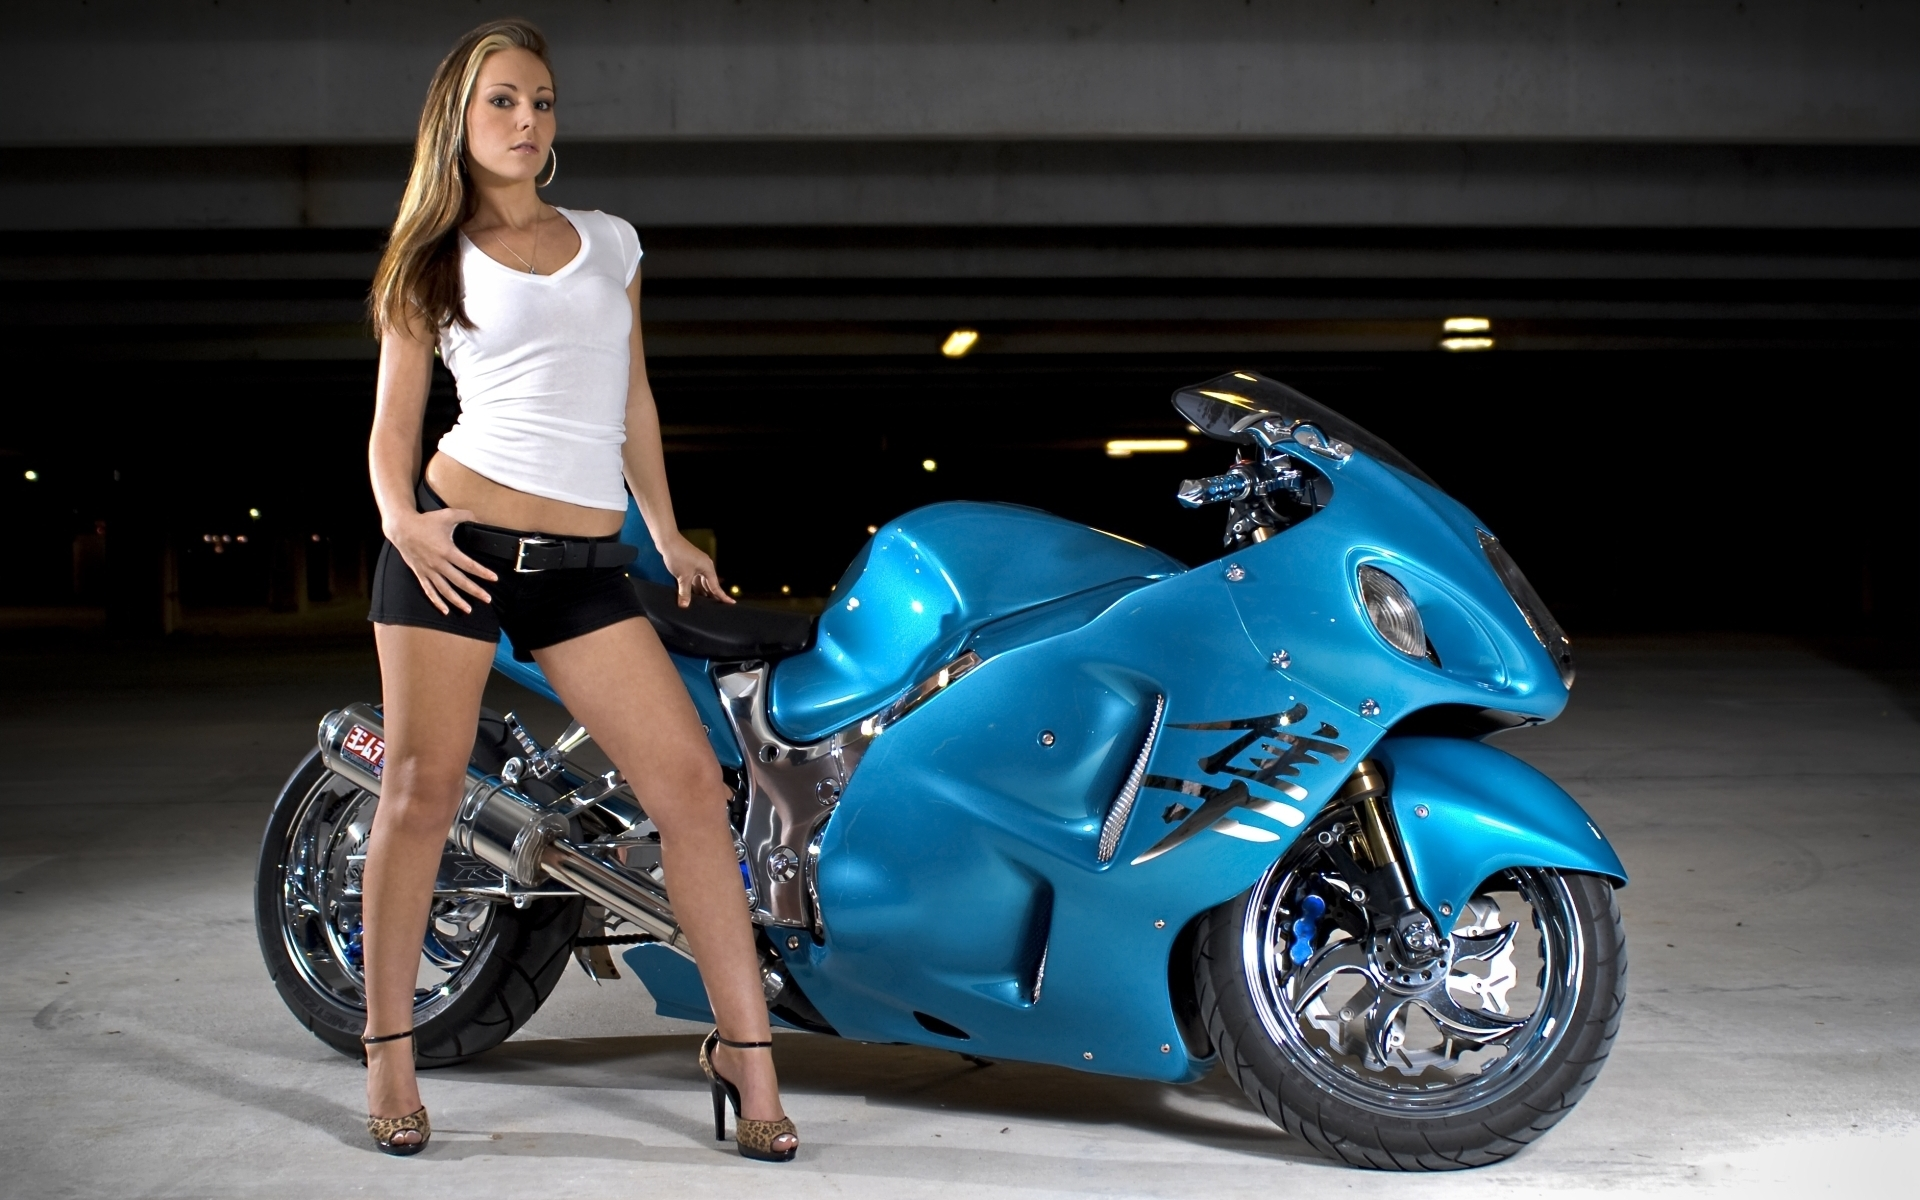 Motorcycle sexy background